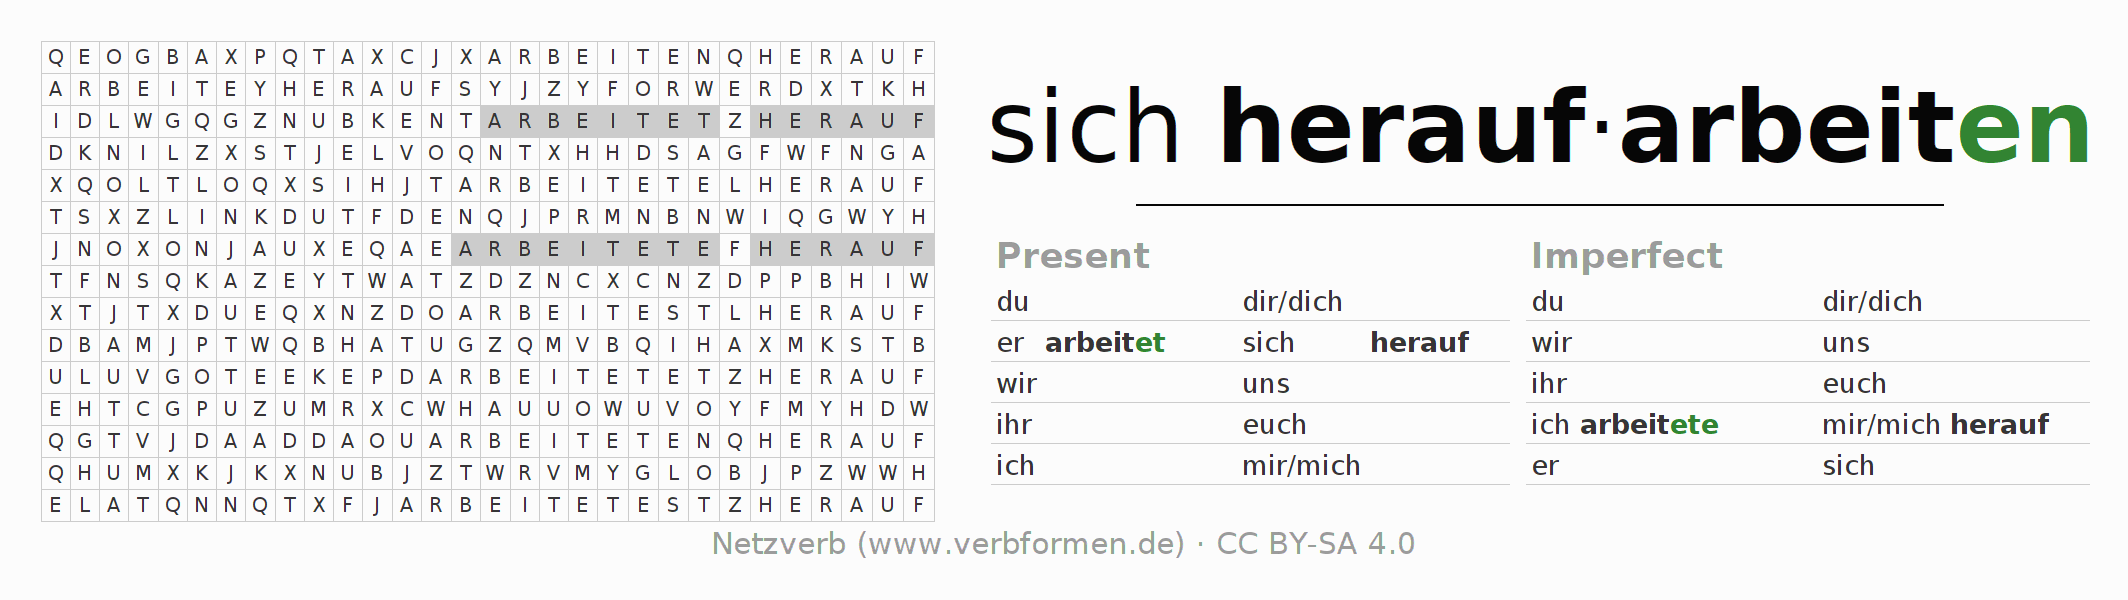 Word search puzzle for the conjugation of the verb sich heraufarbeiten